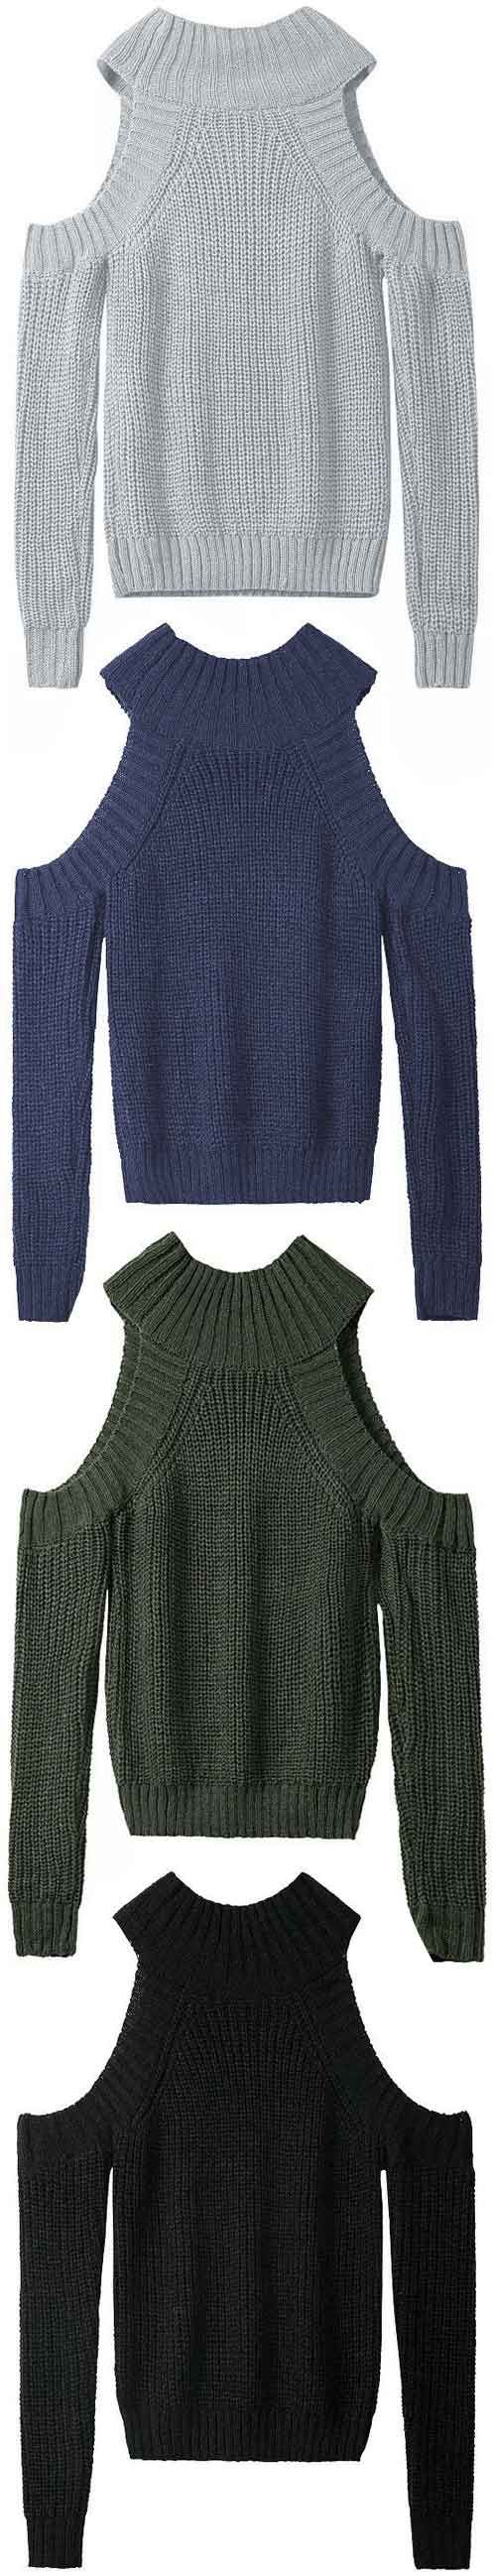 Yes, it's only $28.99& shorter Shipping Time! Free shipping & Easy Return + Refund! It's time to Show Off! This unique Off the Shoulder Sweater has it all. You will feel like you are floating while walking on street.